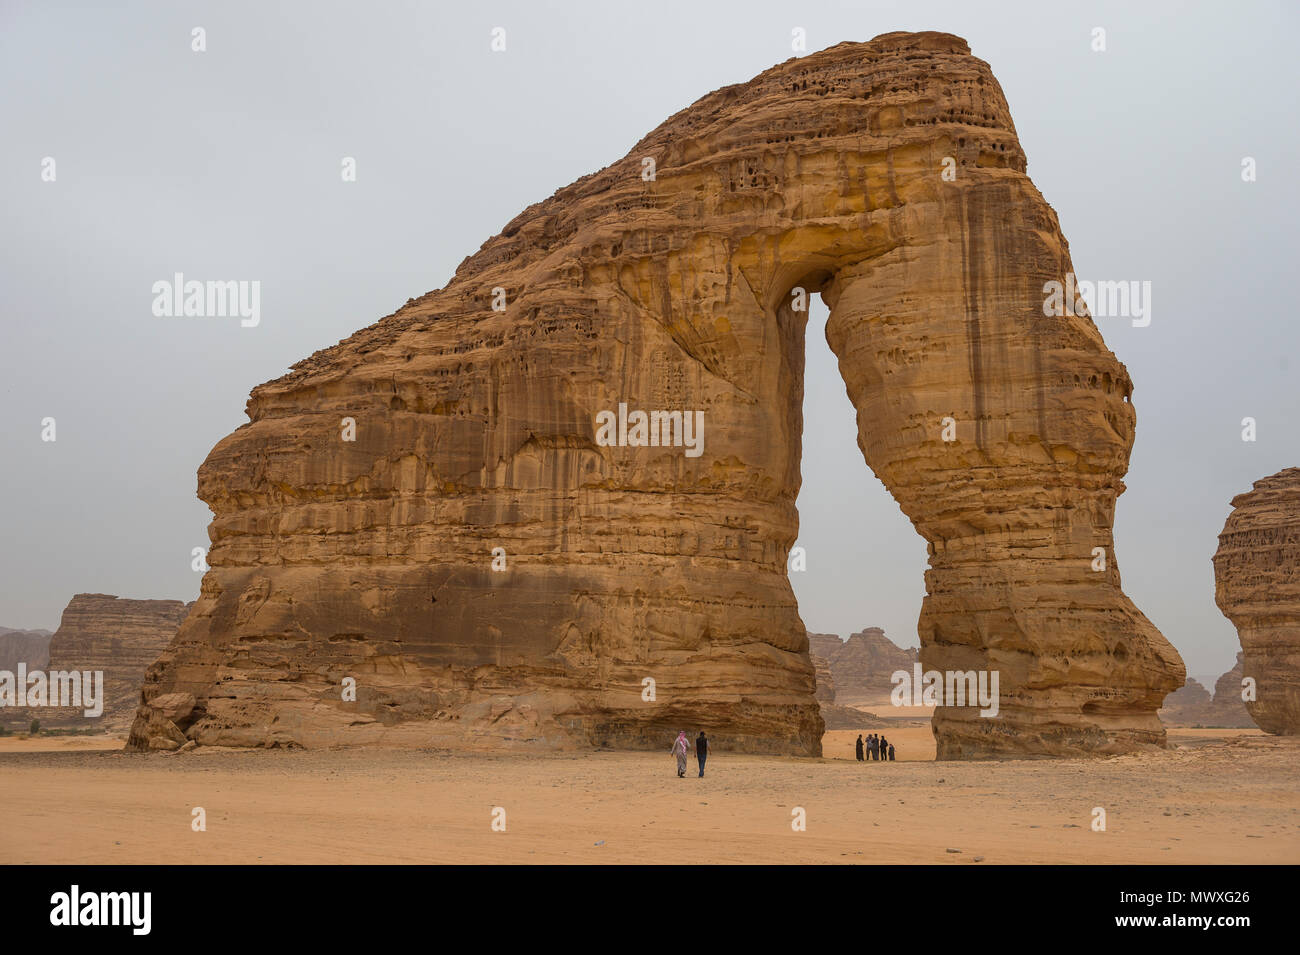 Locals standing in the giant arch of Elephant Rock, Al Ula, Saudi Arabia, Middle East - Stock Image